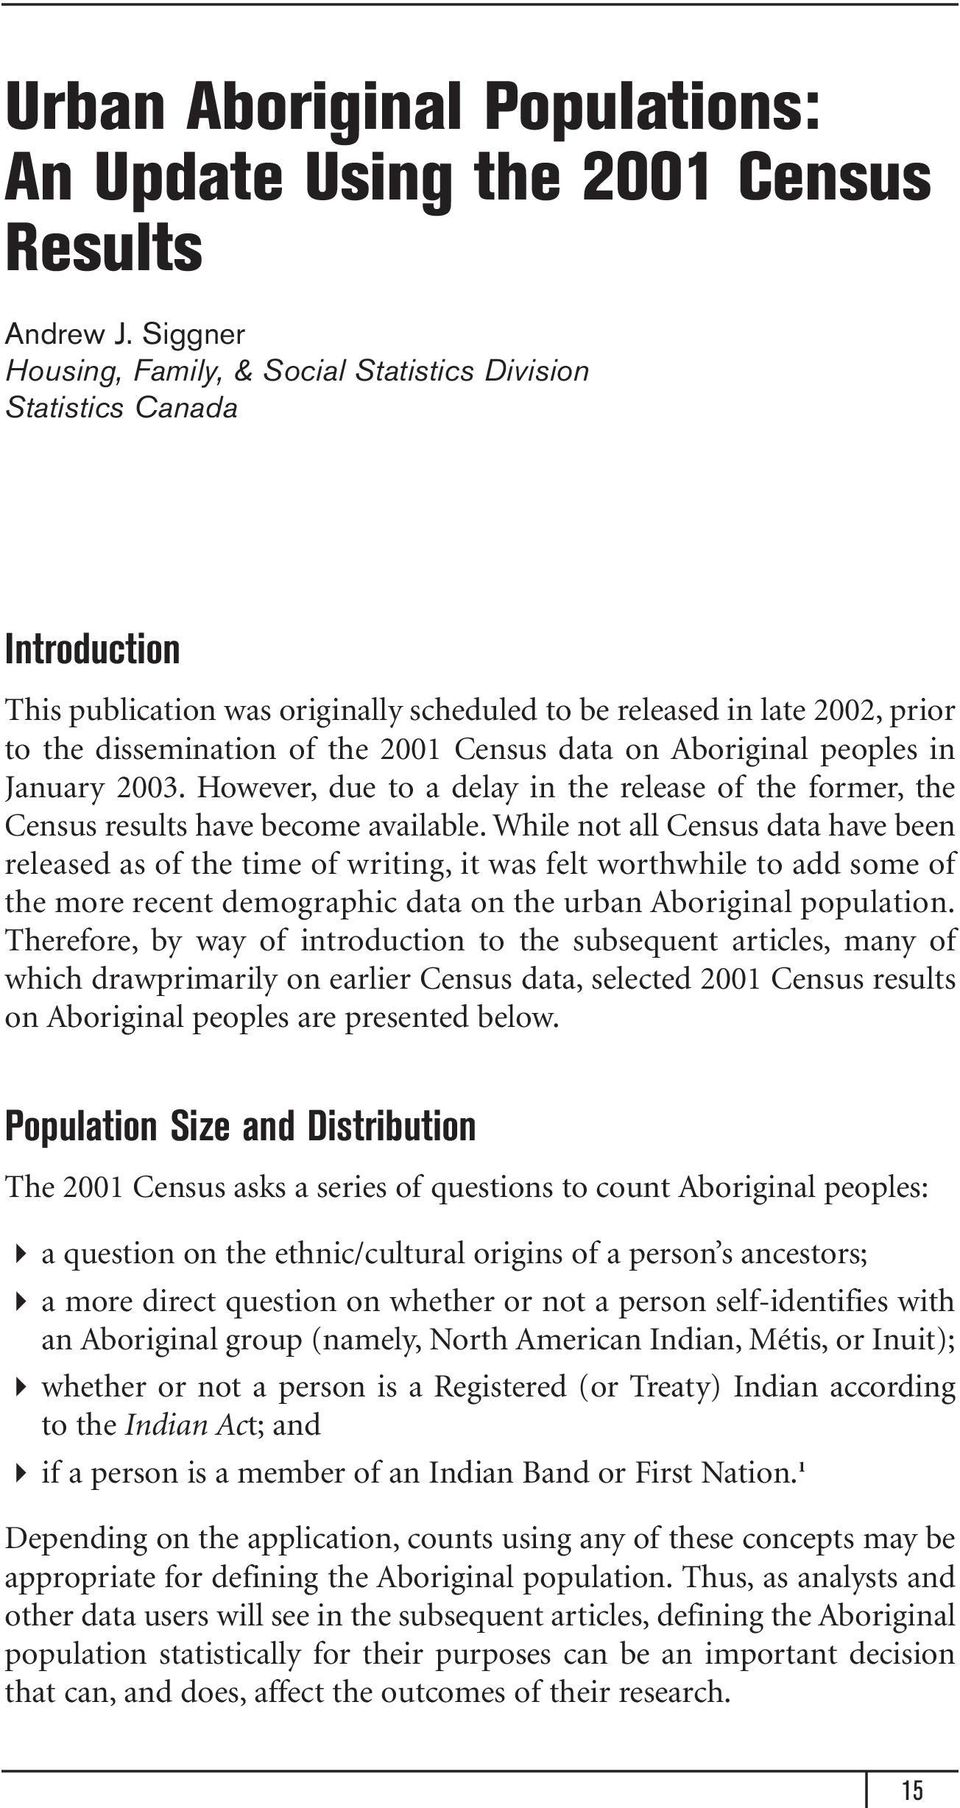 Census data on Aboriginal peoples in January 2003. However, due to a delay in the release of the former, the Census results have become available.